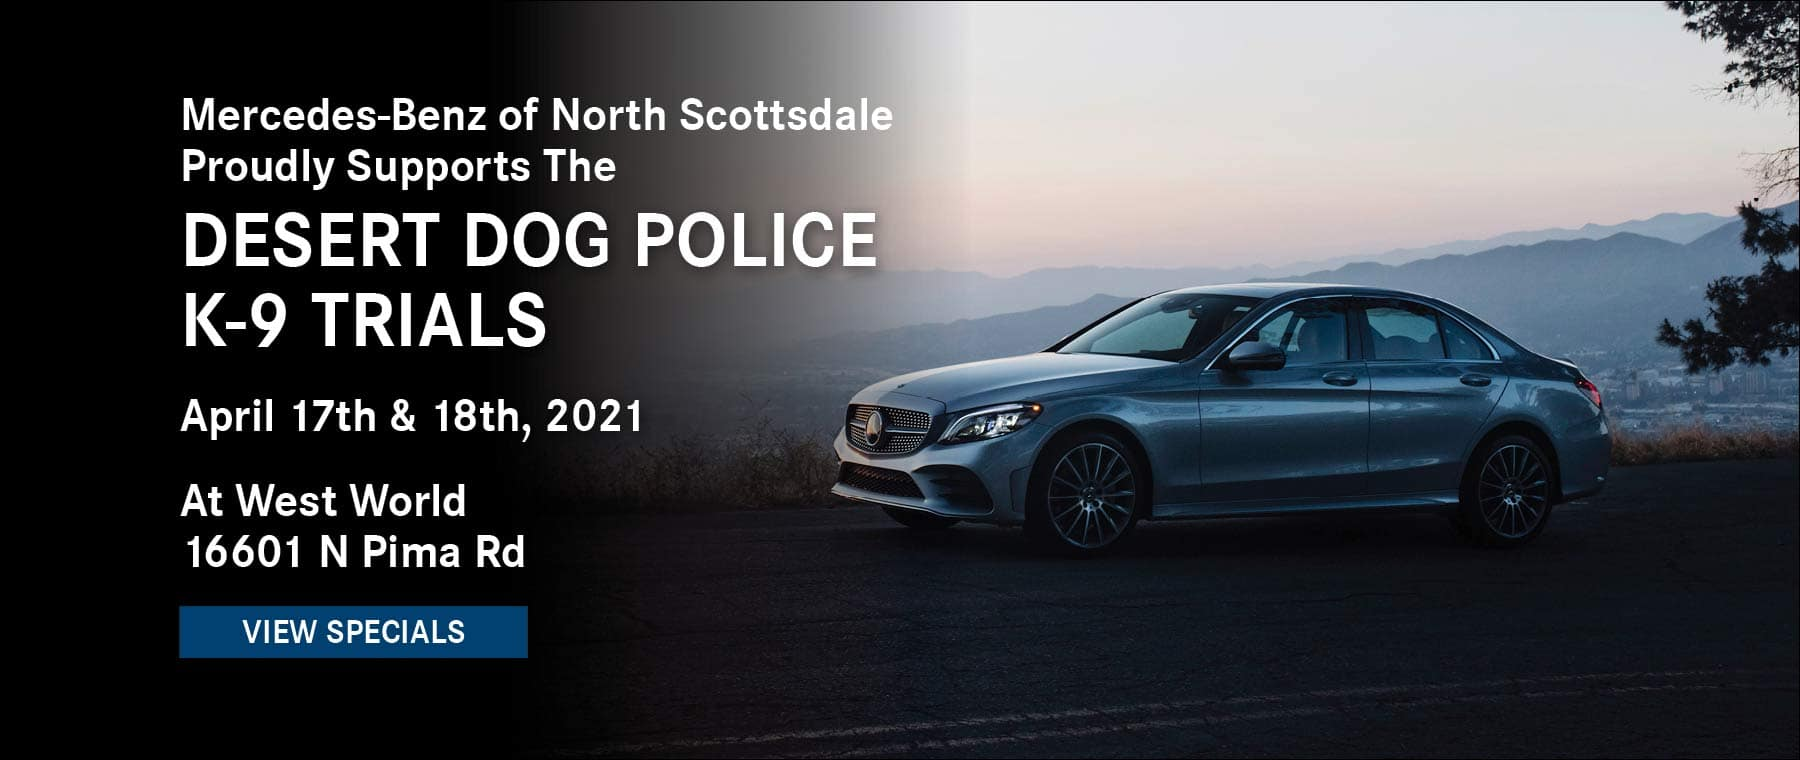 MB North Scottsdale proudly supports K-9 Trials